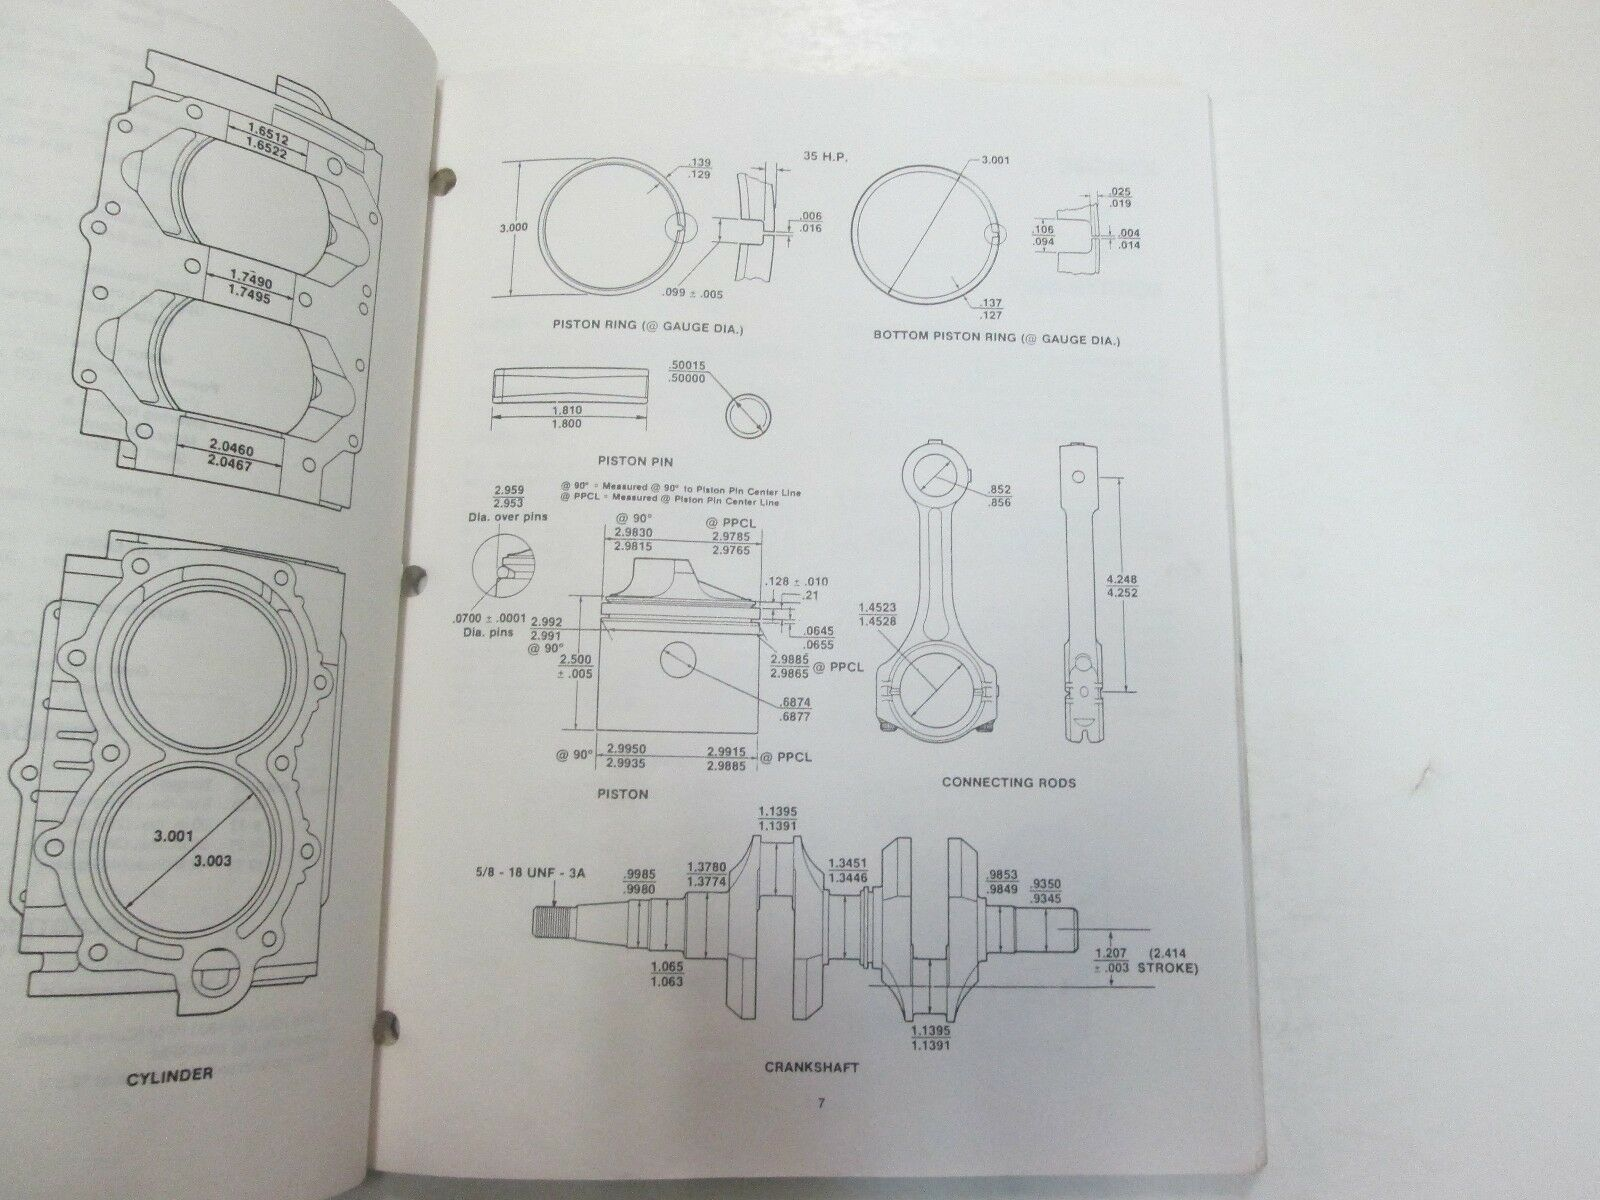 1984 1985 1986 Force Outboards 35 HP Outboard Motors Service Manual STAIN WORN** image 6